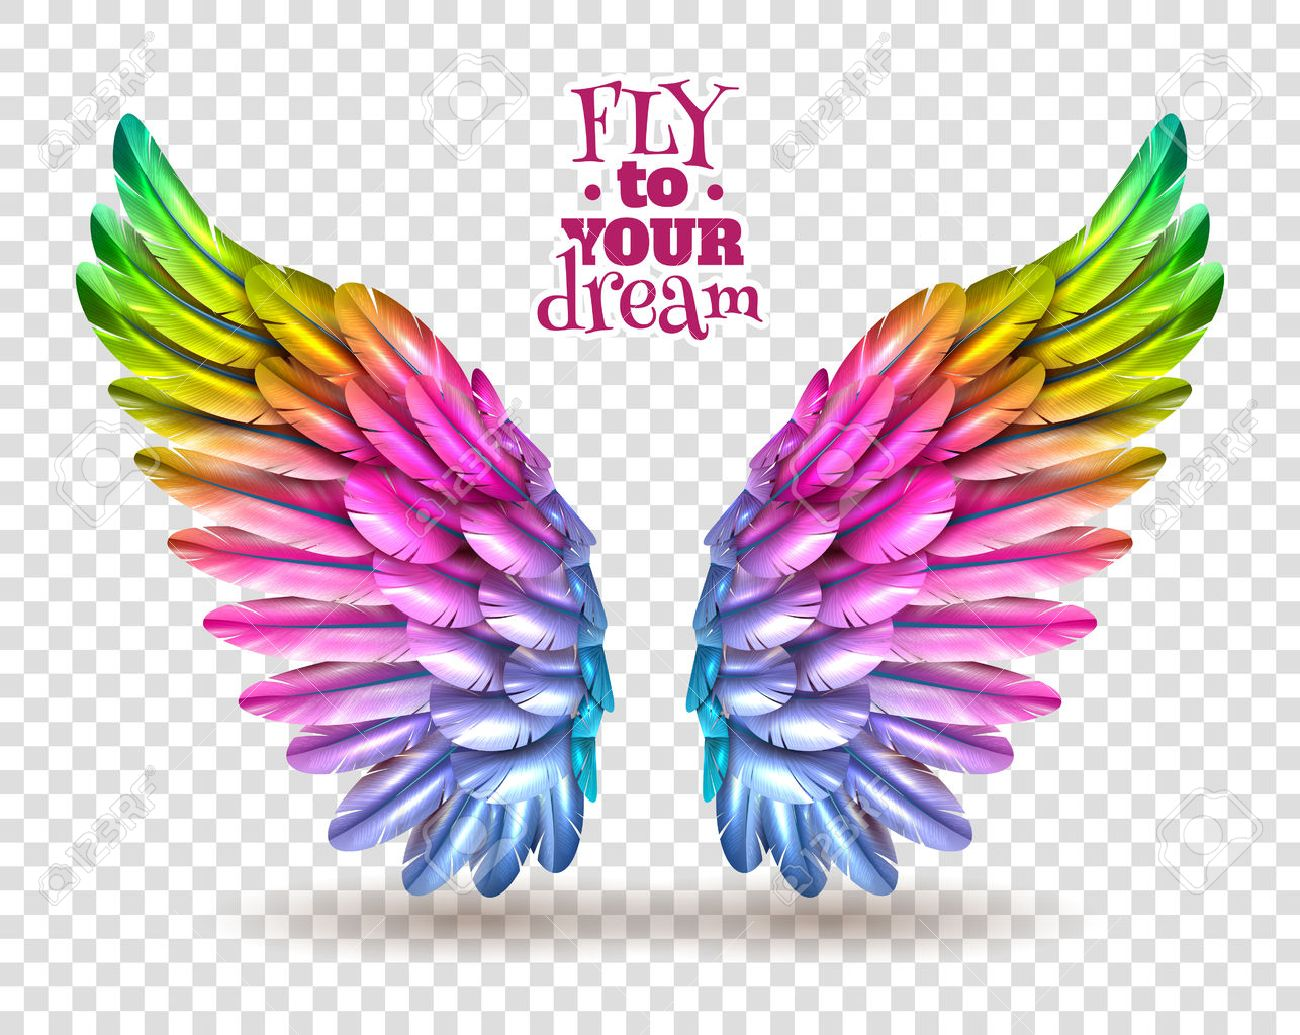 Pair of colorful bird wings set isolated on transparent background with shadow flat vector illustration - 60299429